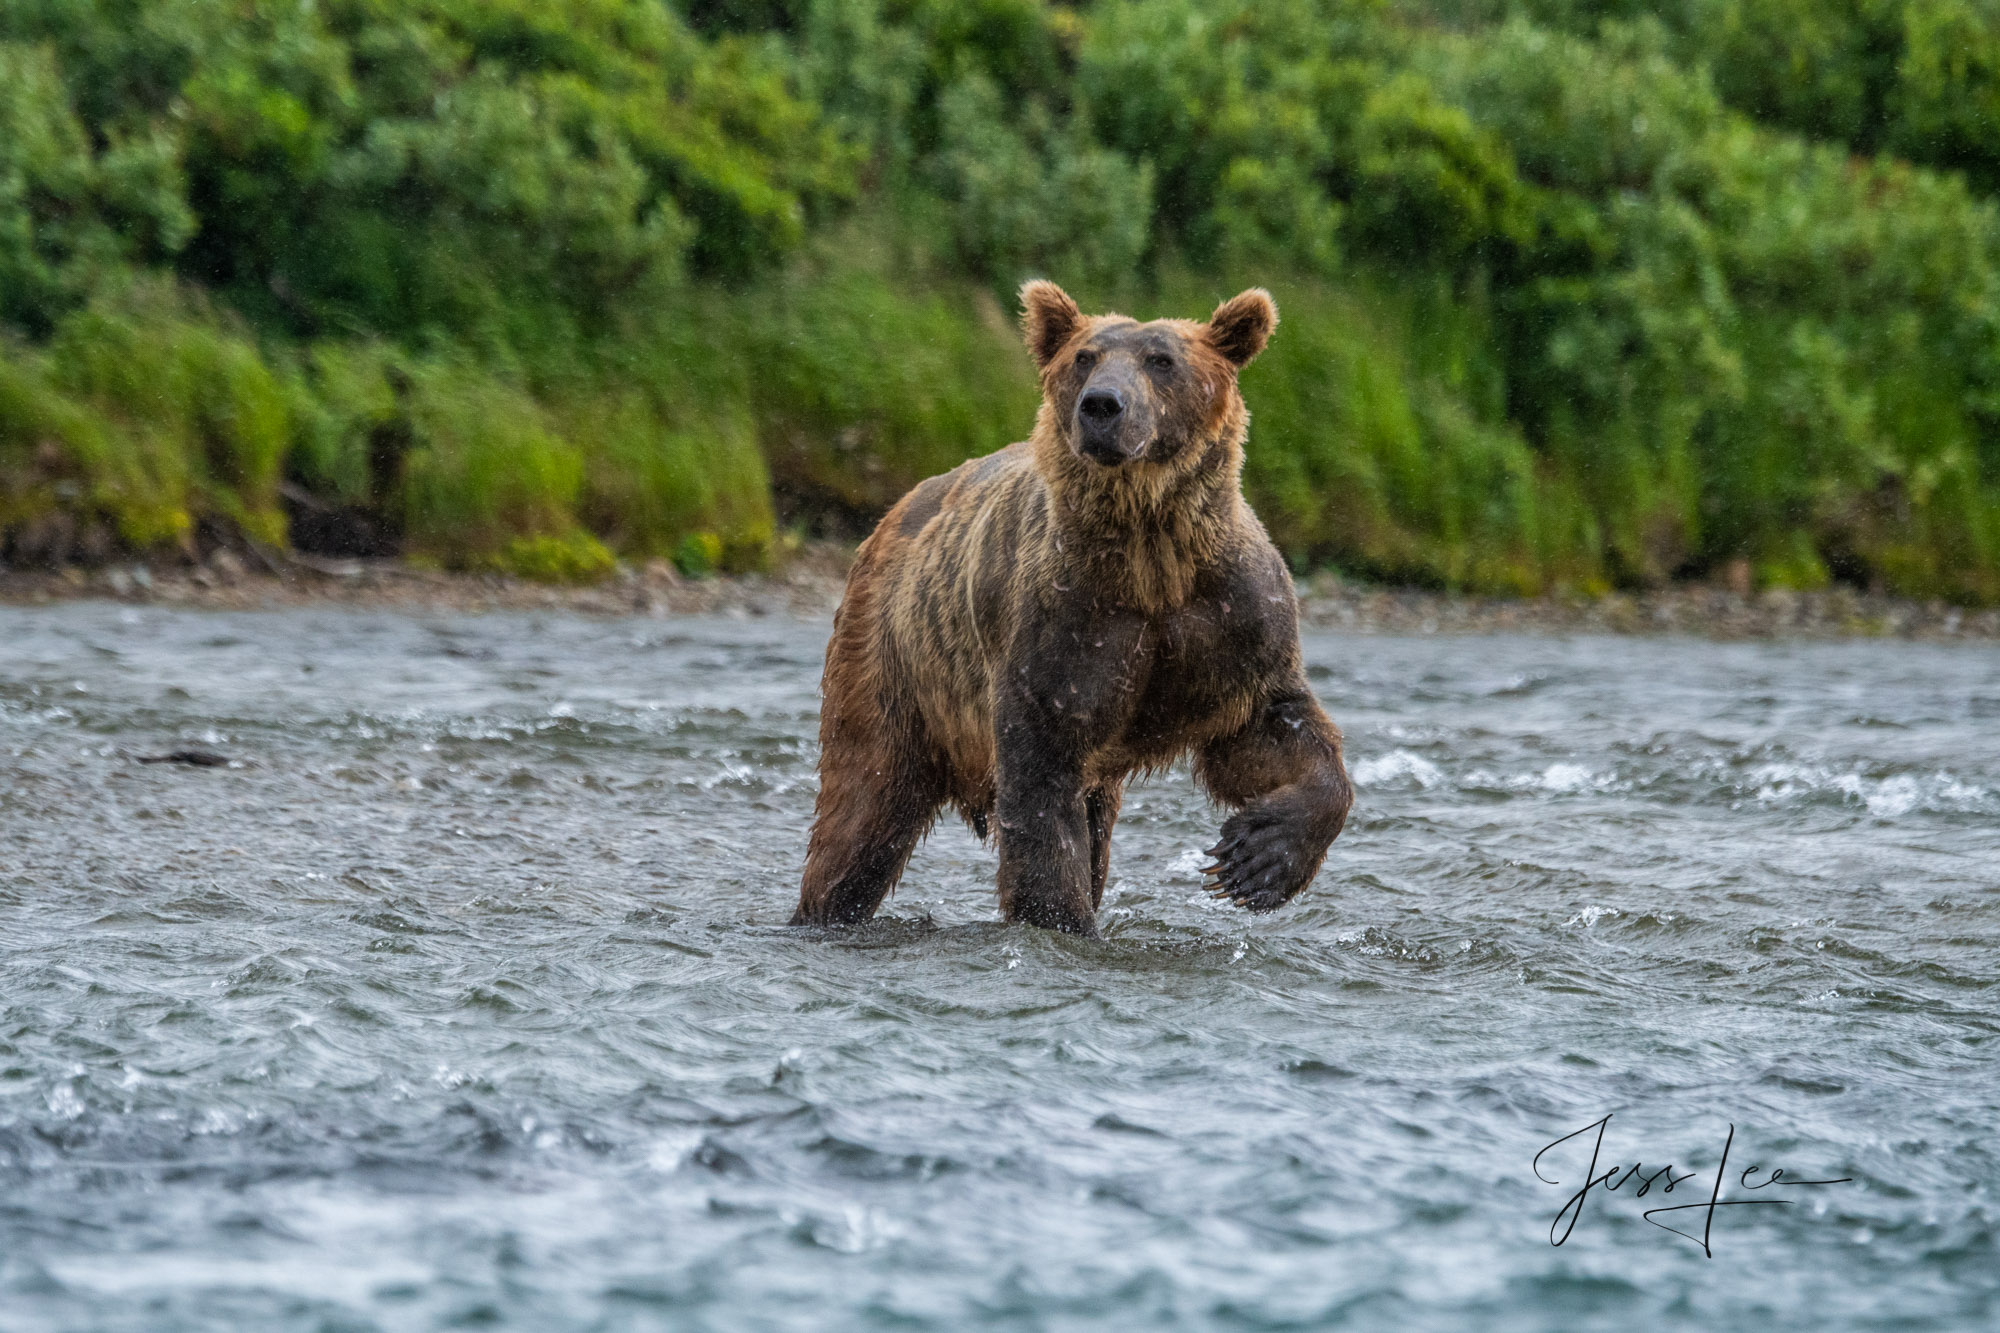 Grizzly bear interrupted while fishing for salmon in Katmai National Park, Alaska